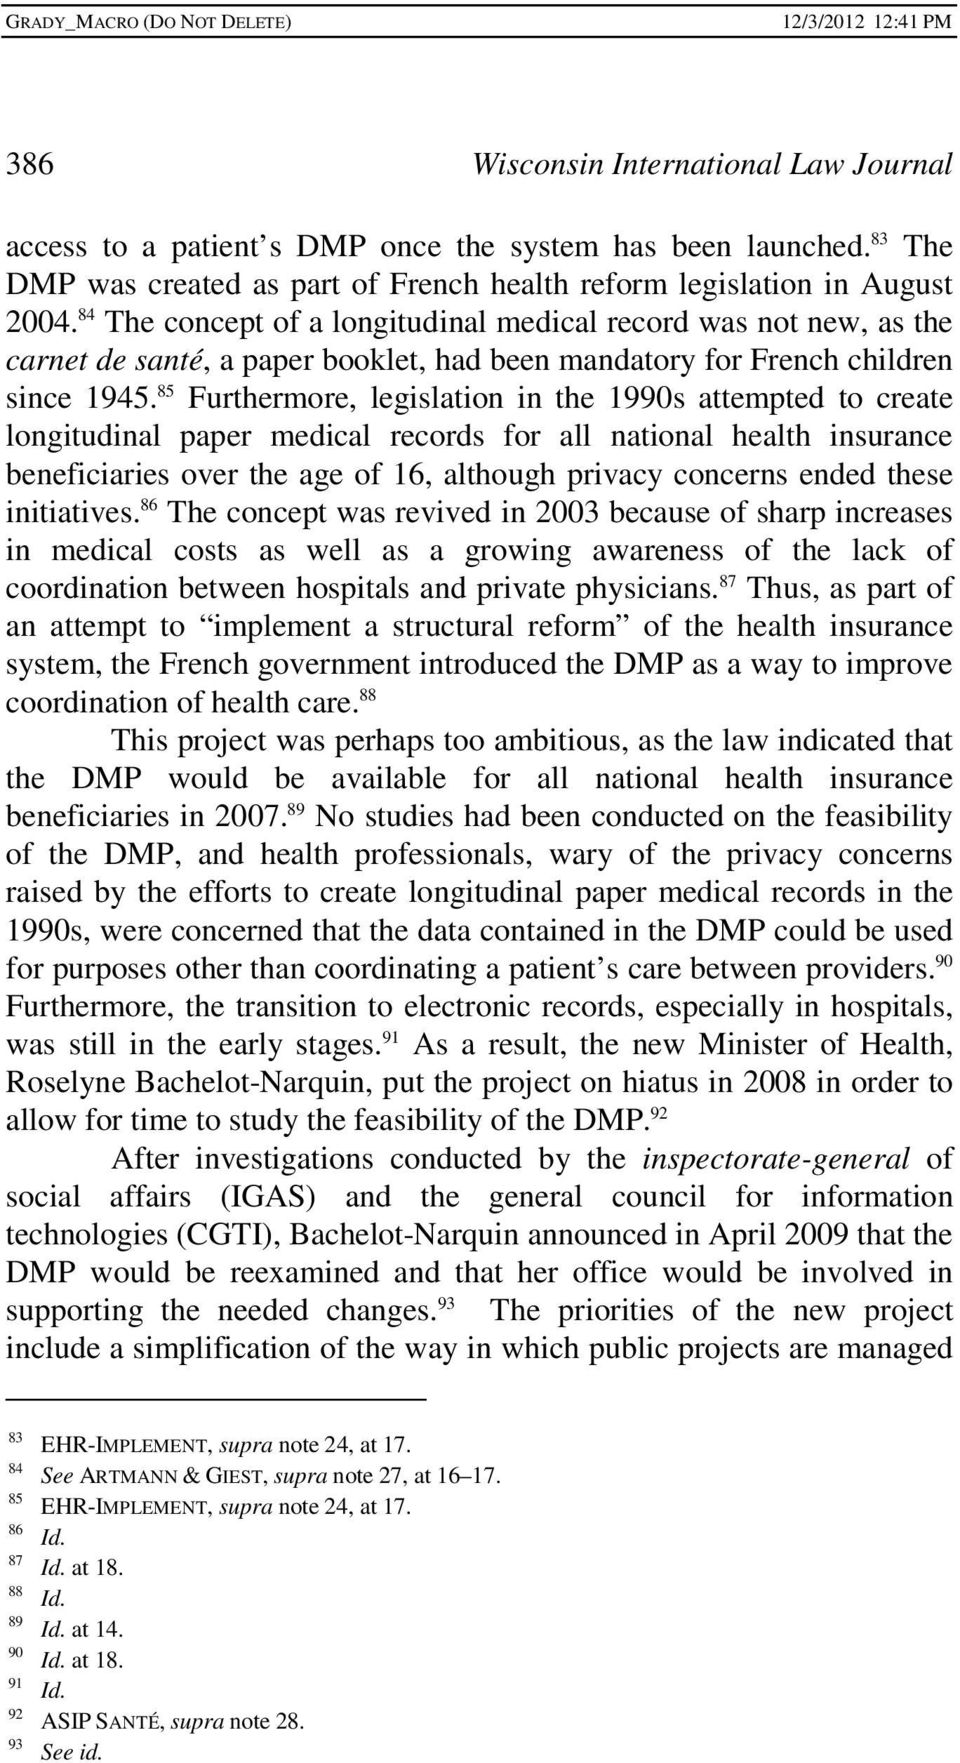 85 Furthermore, legislation in the 1990s attempted to create longitudinal paper medical records for all national health insurance beneficiaries over the age of 16, although privacy concerns ended